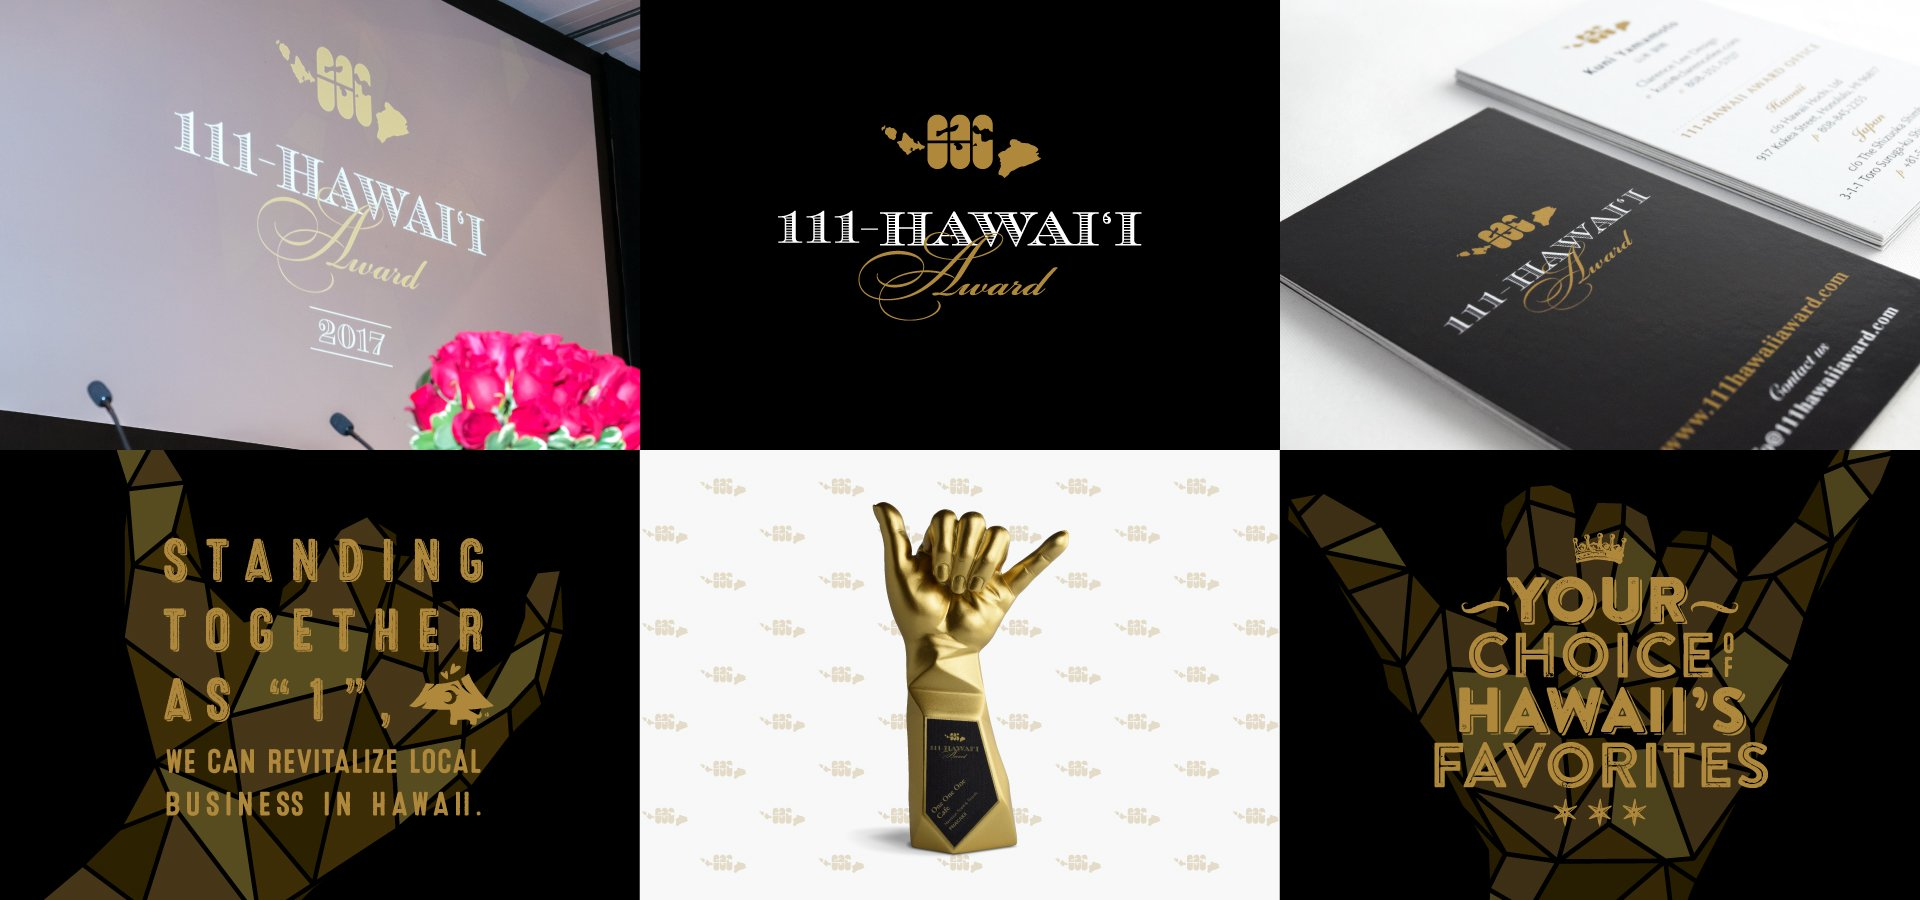 111-Hawaii Award Logo & Graphics